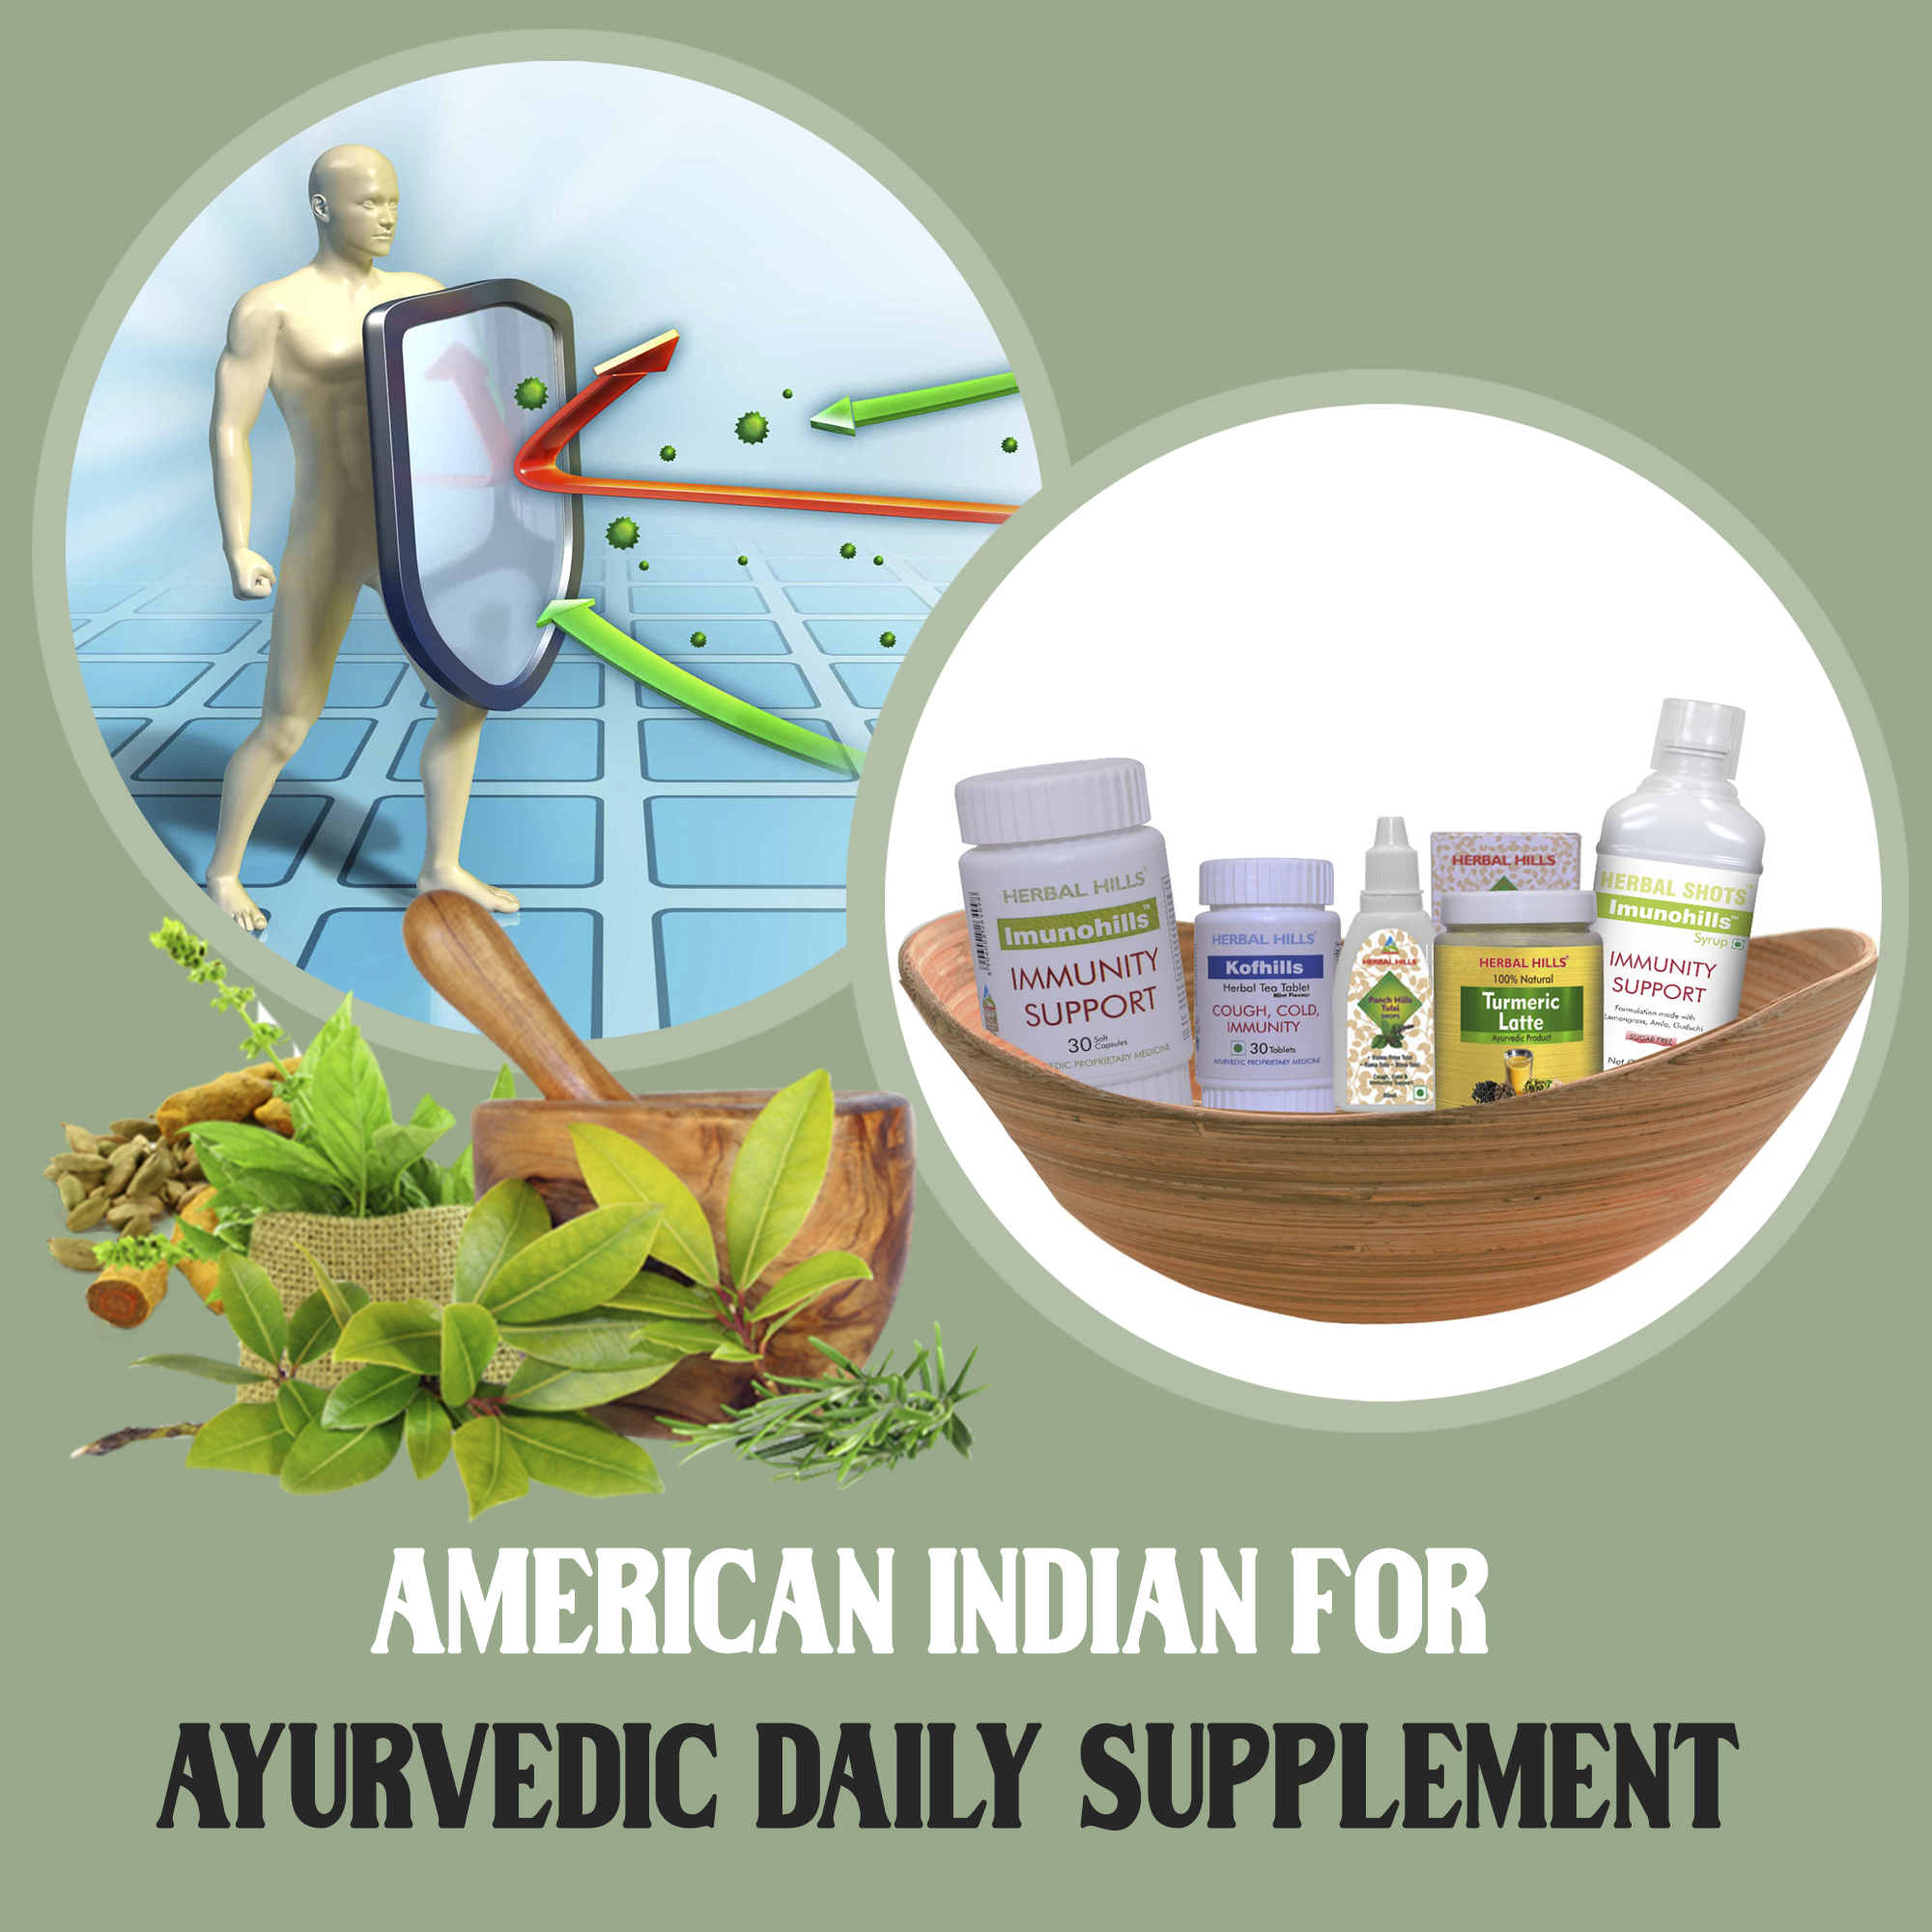 ayurvedic daily supplement